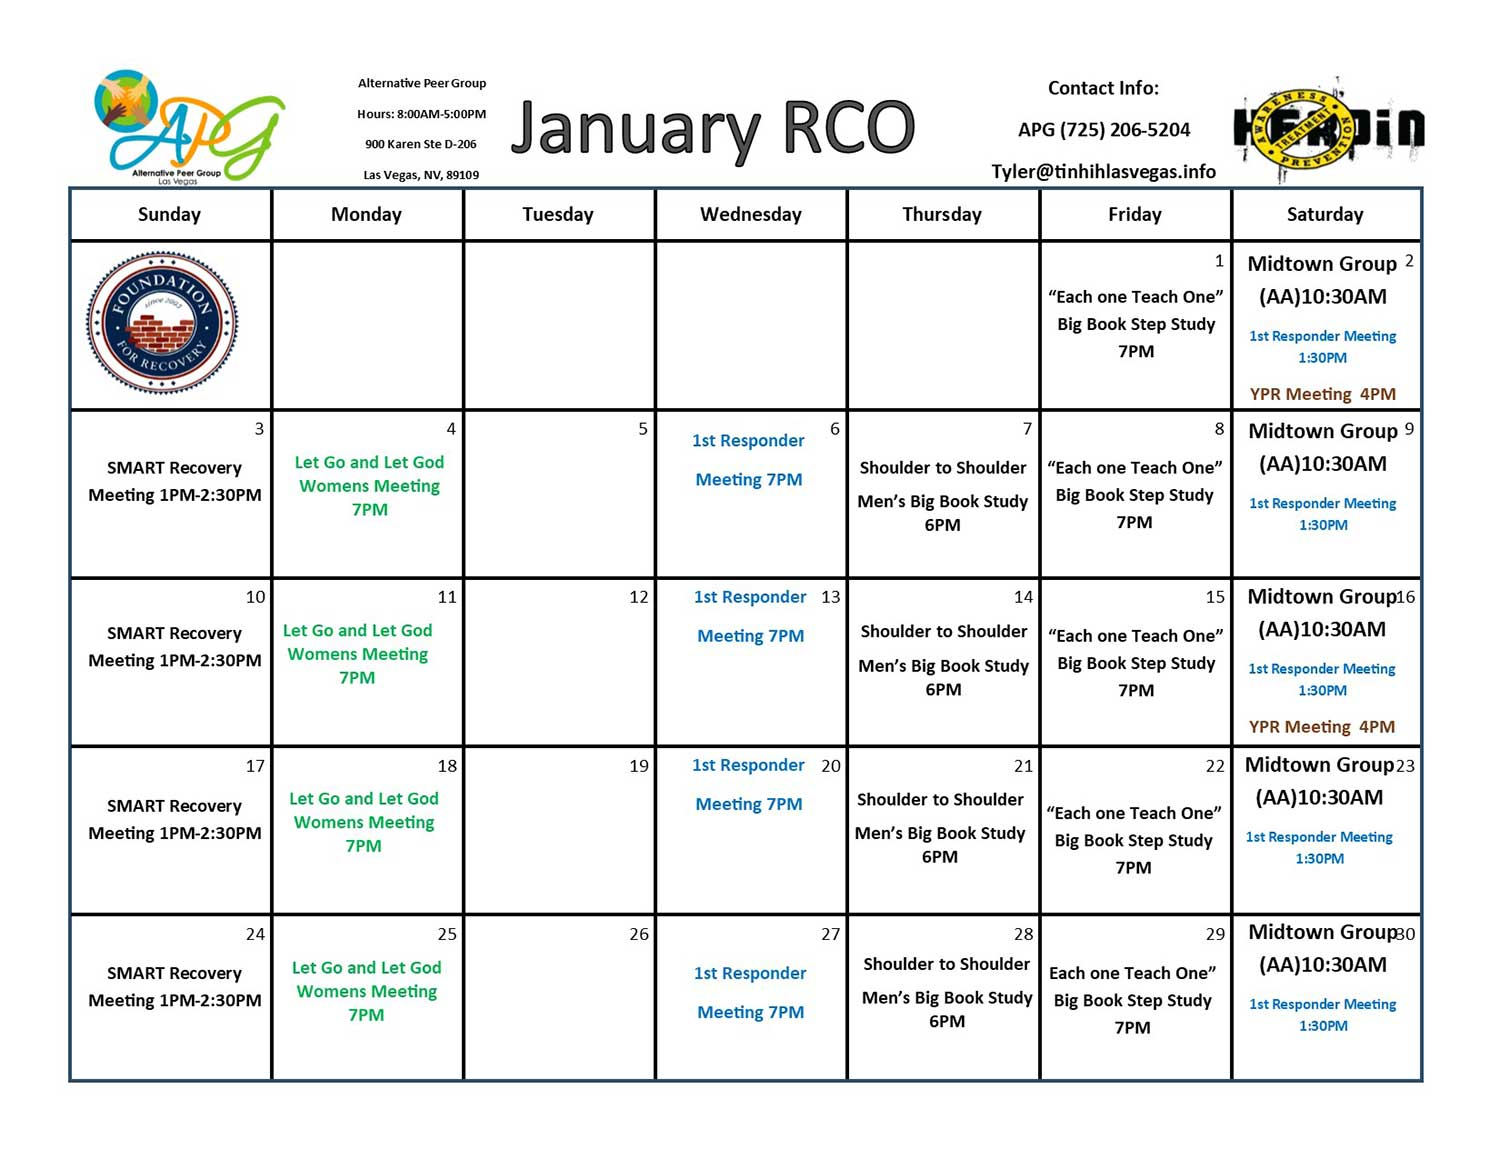 APG RCO Schedule January 2021